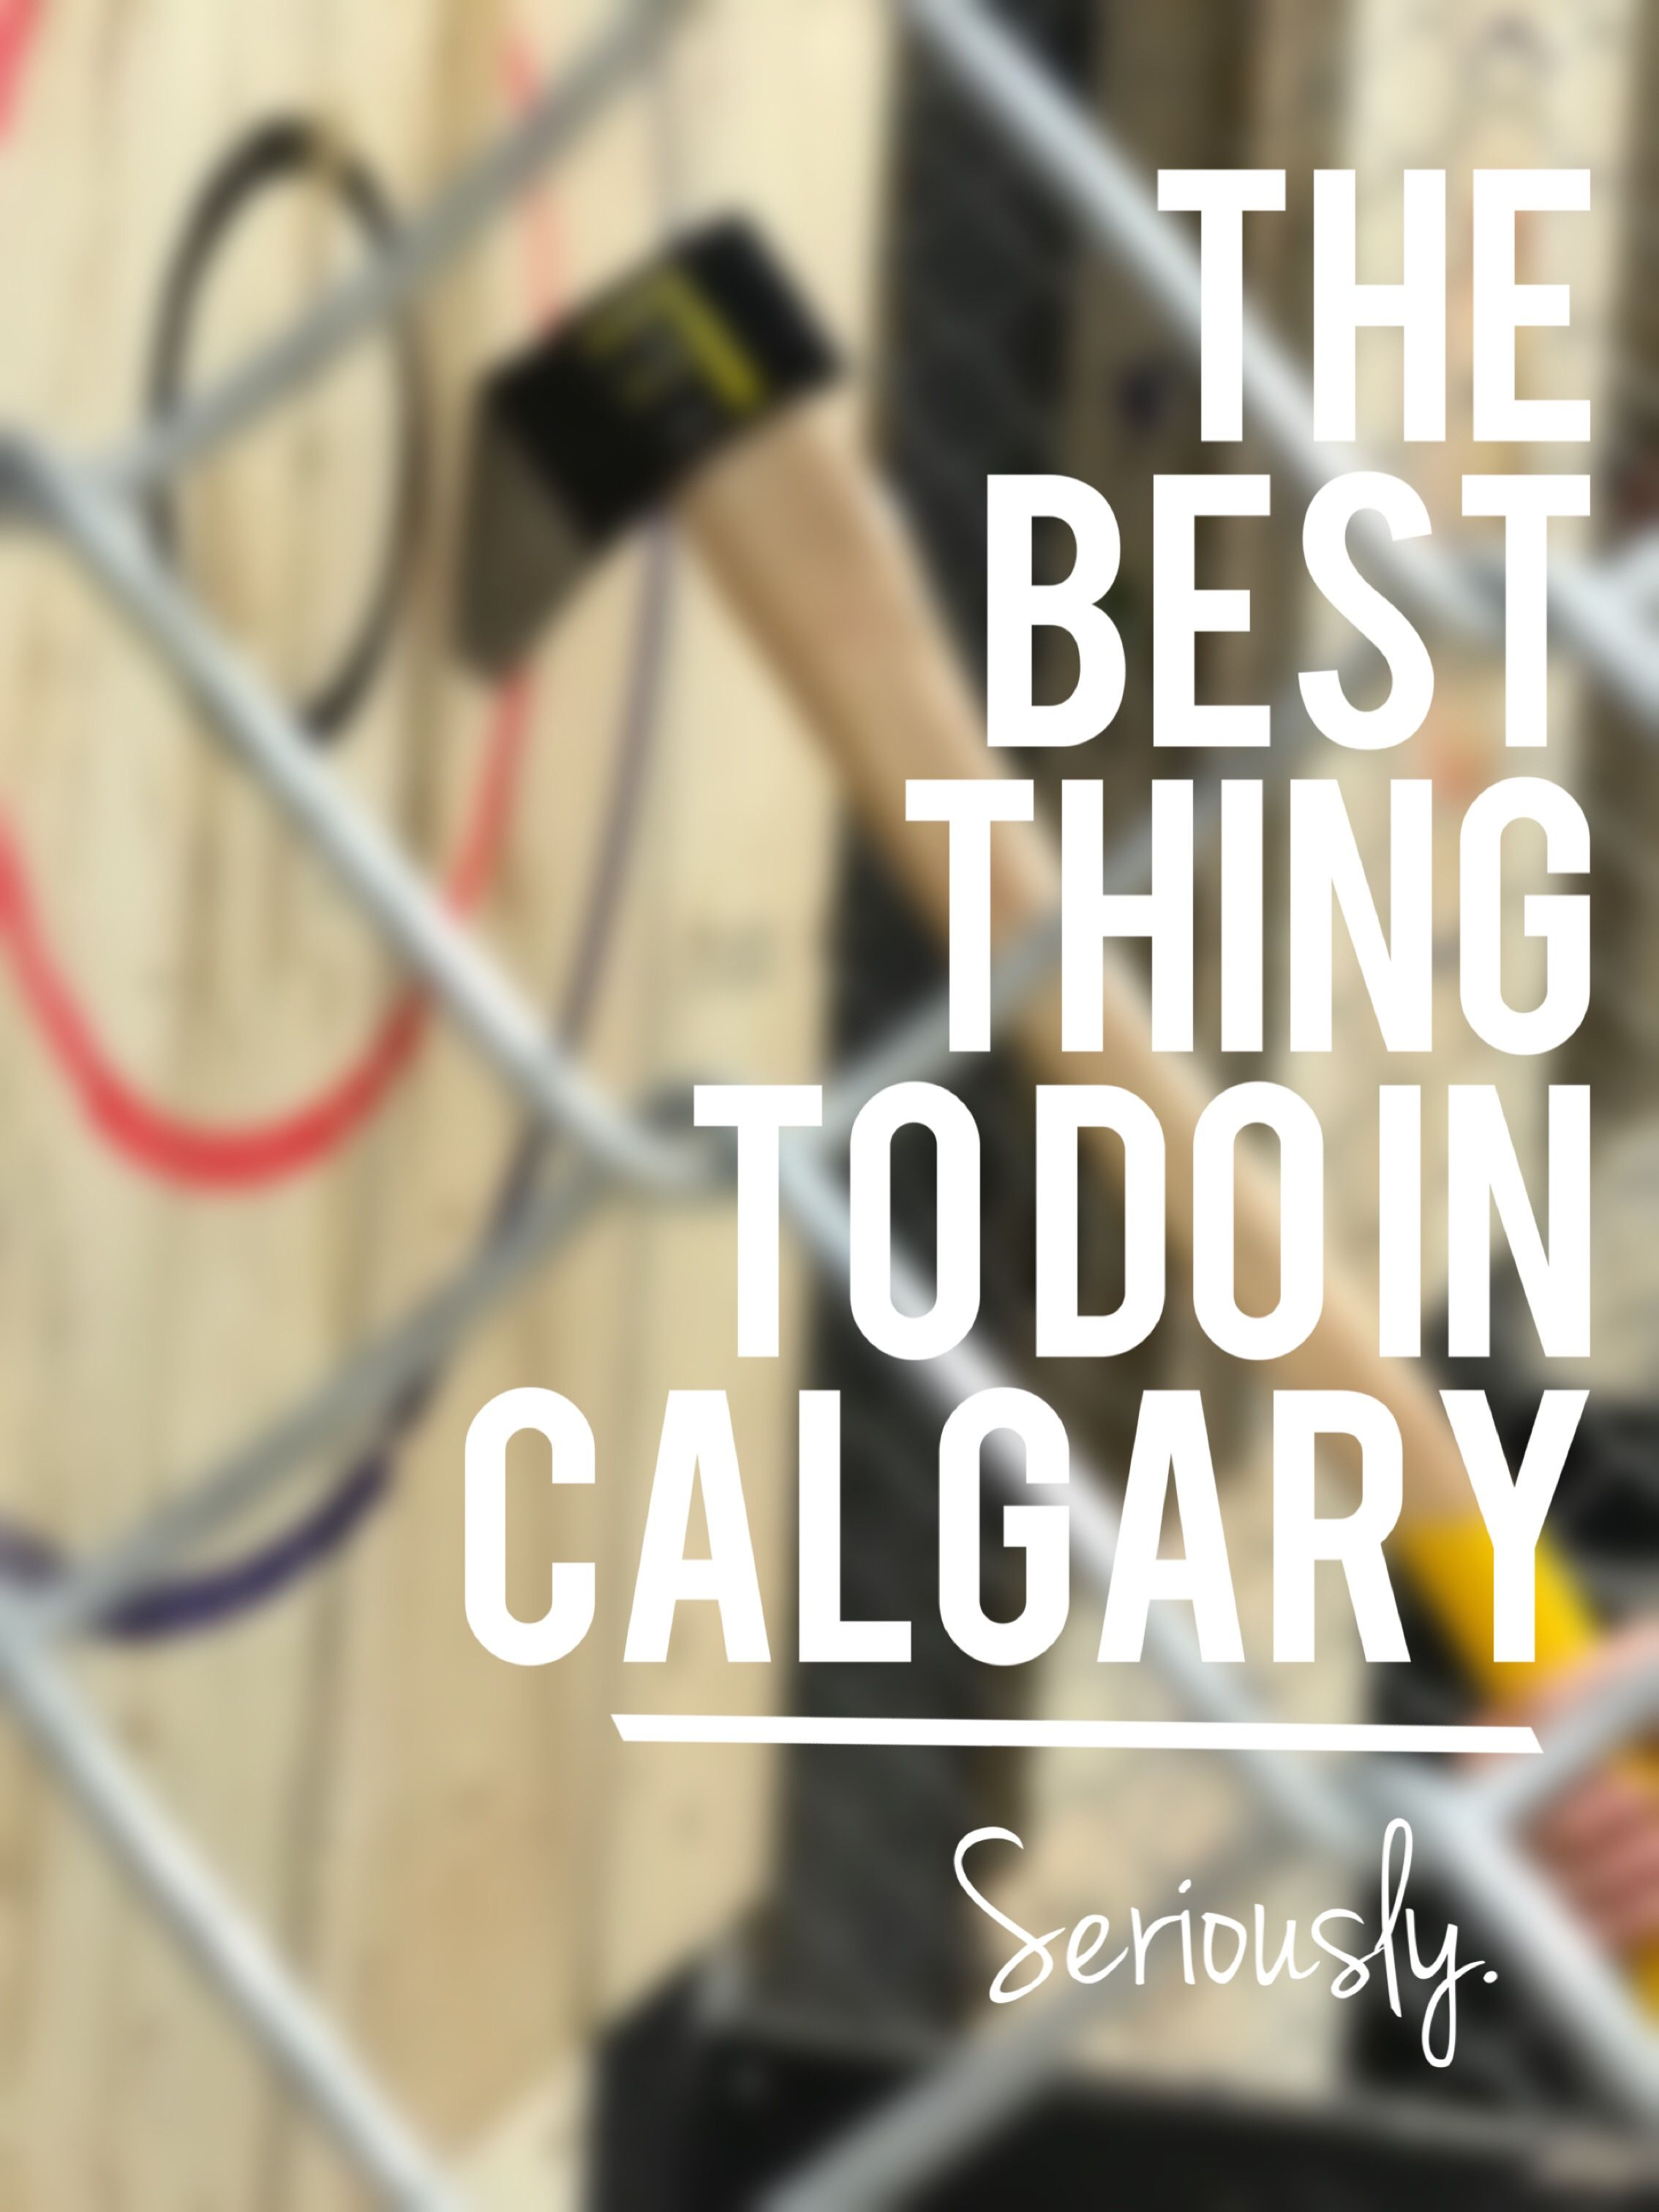 The 1 Most Fun Thing To Do In Calgary With Images Canada